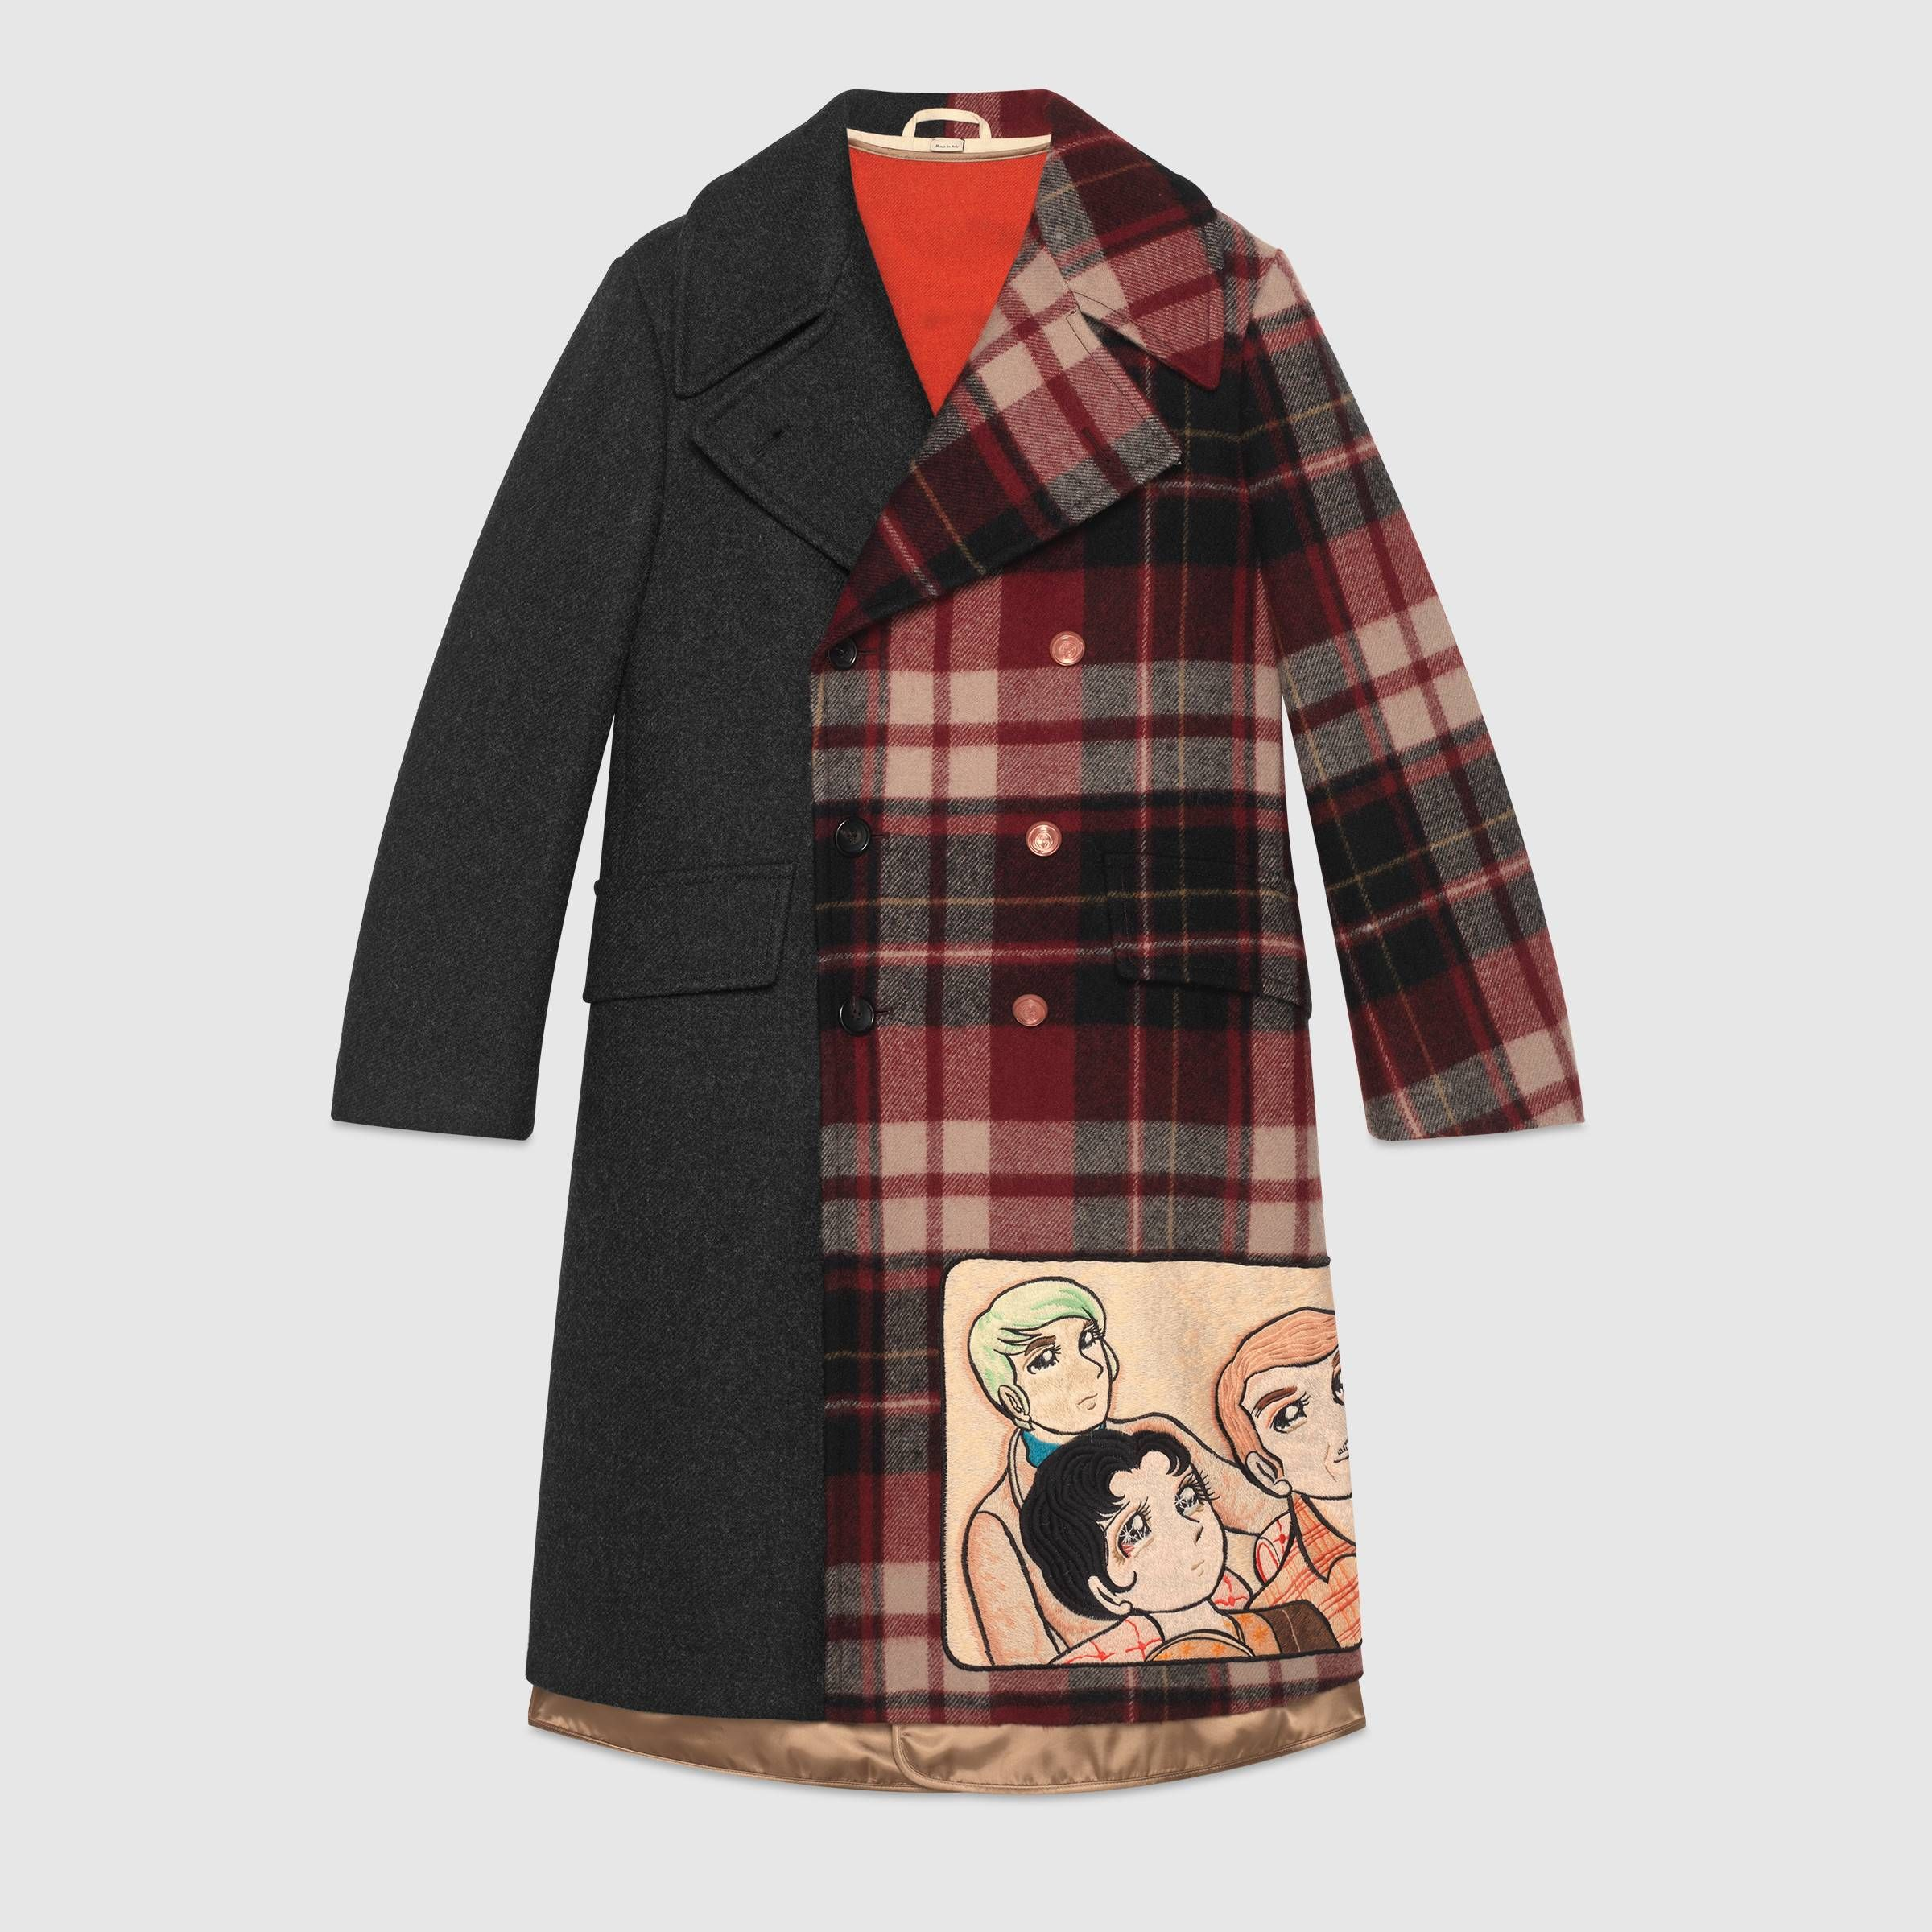 ad5f42c77 Coat with Viva! Volleyball patch in Dark grey on one side and red, black,  yellow and ivory check wool on the other | Gucci Men's Coats